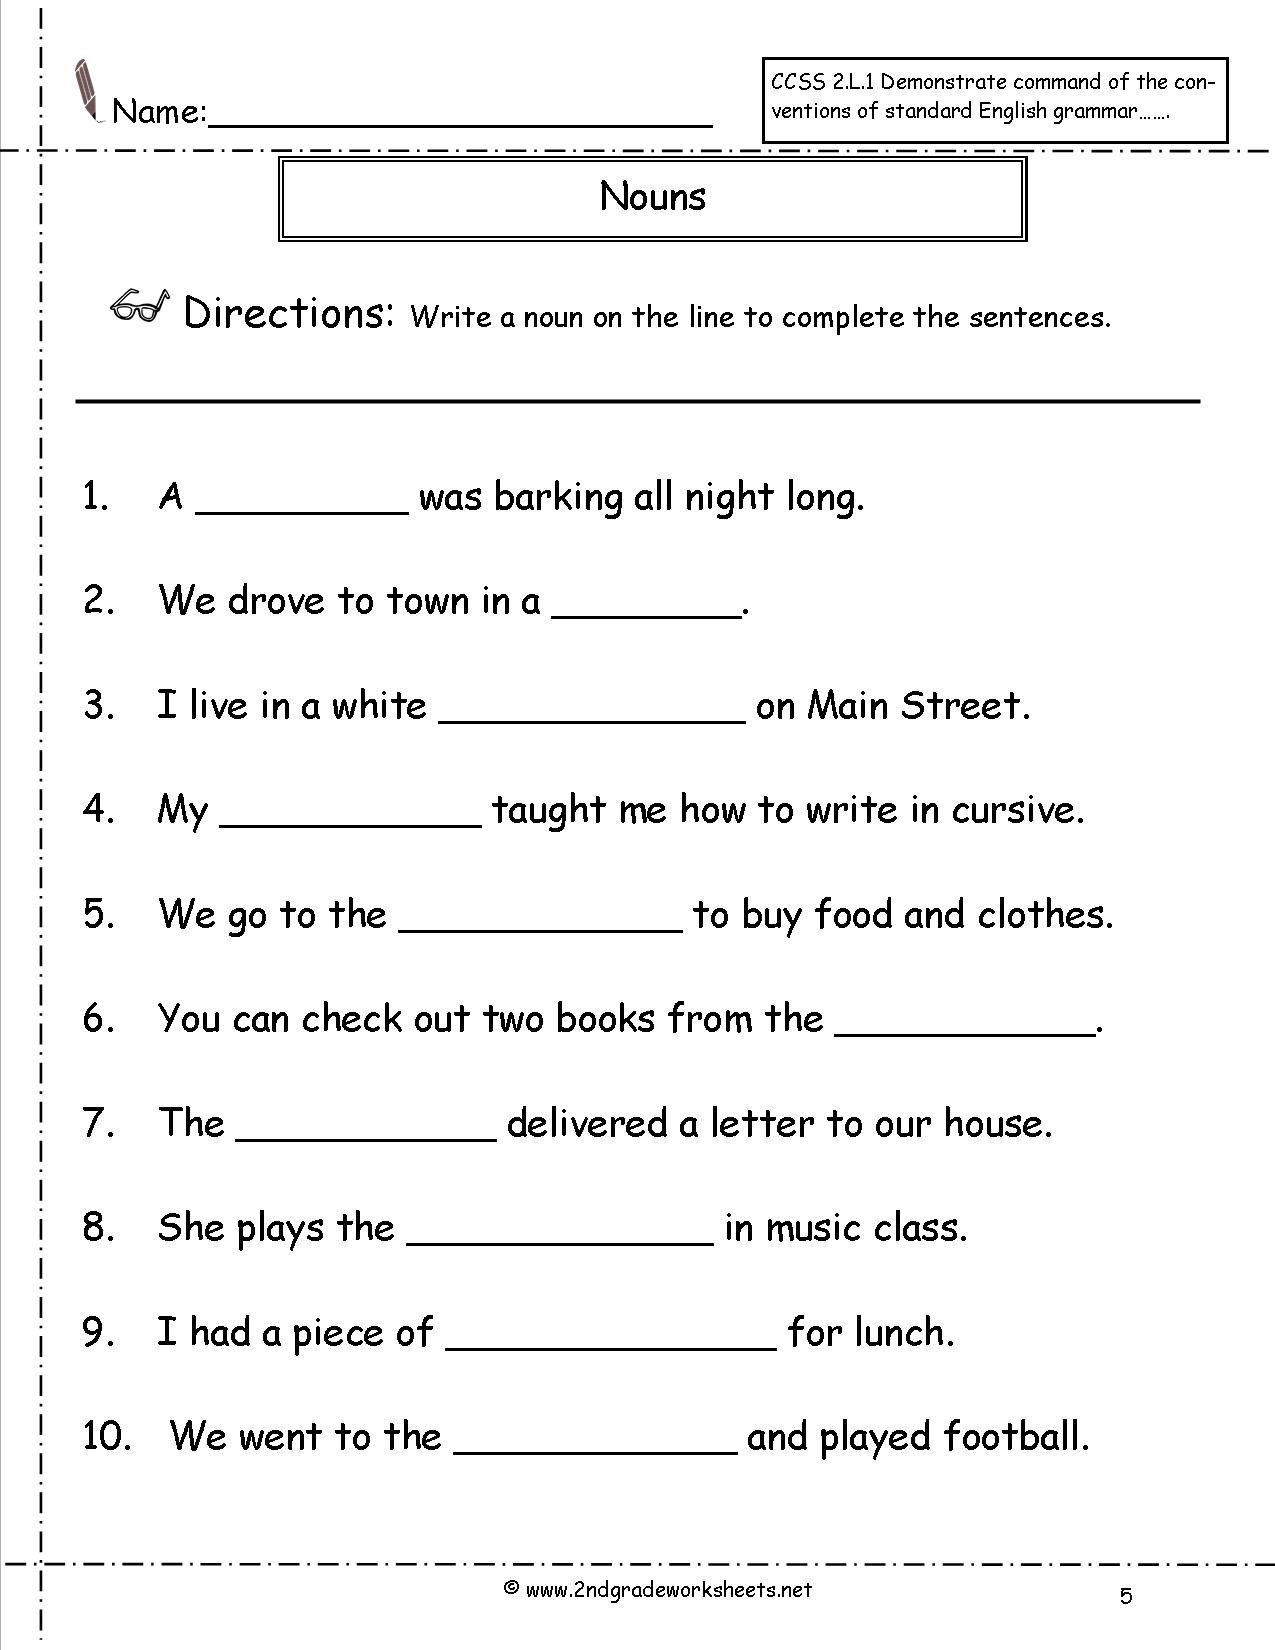 15 Best Images Of Proper Pronouns Worksheets